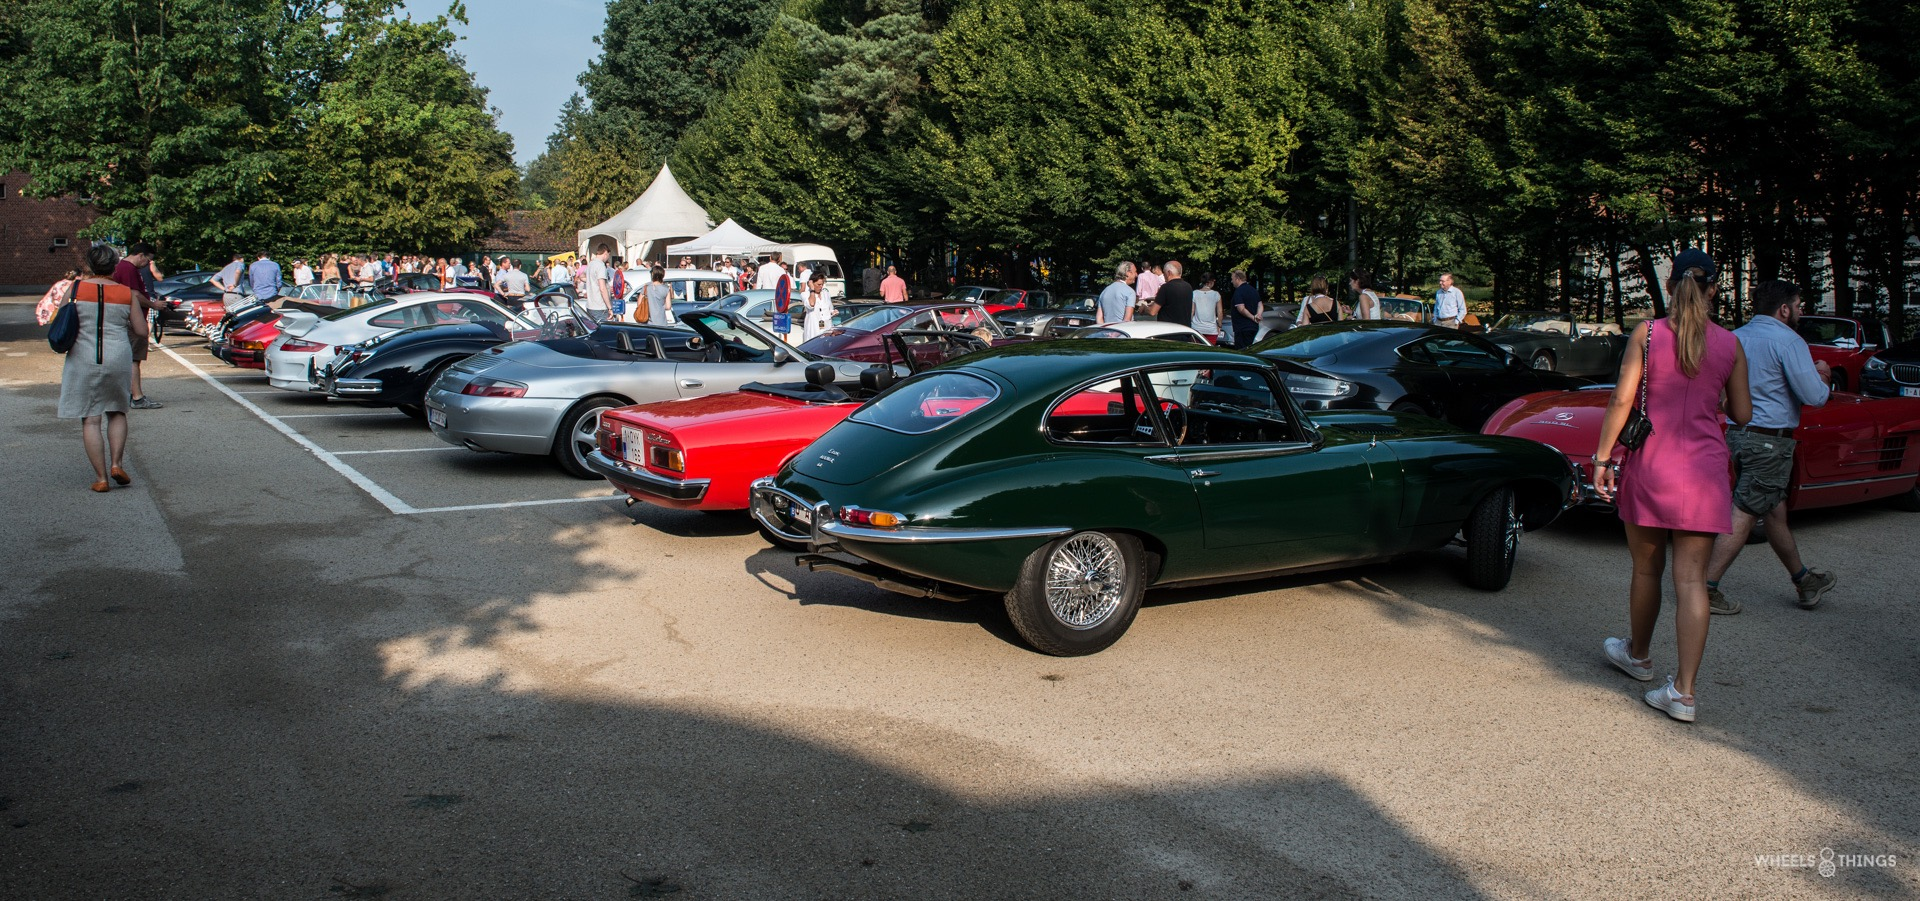 Concours D'elegance Lions Waasmunster-66